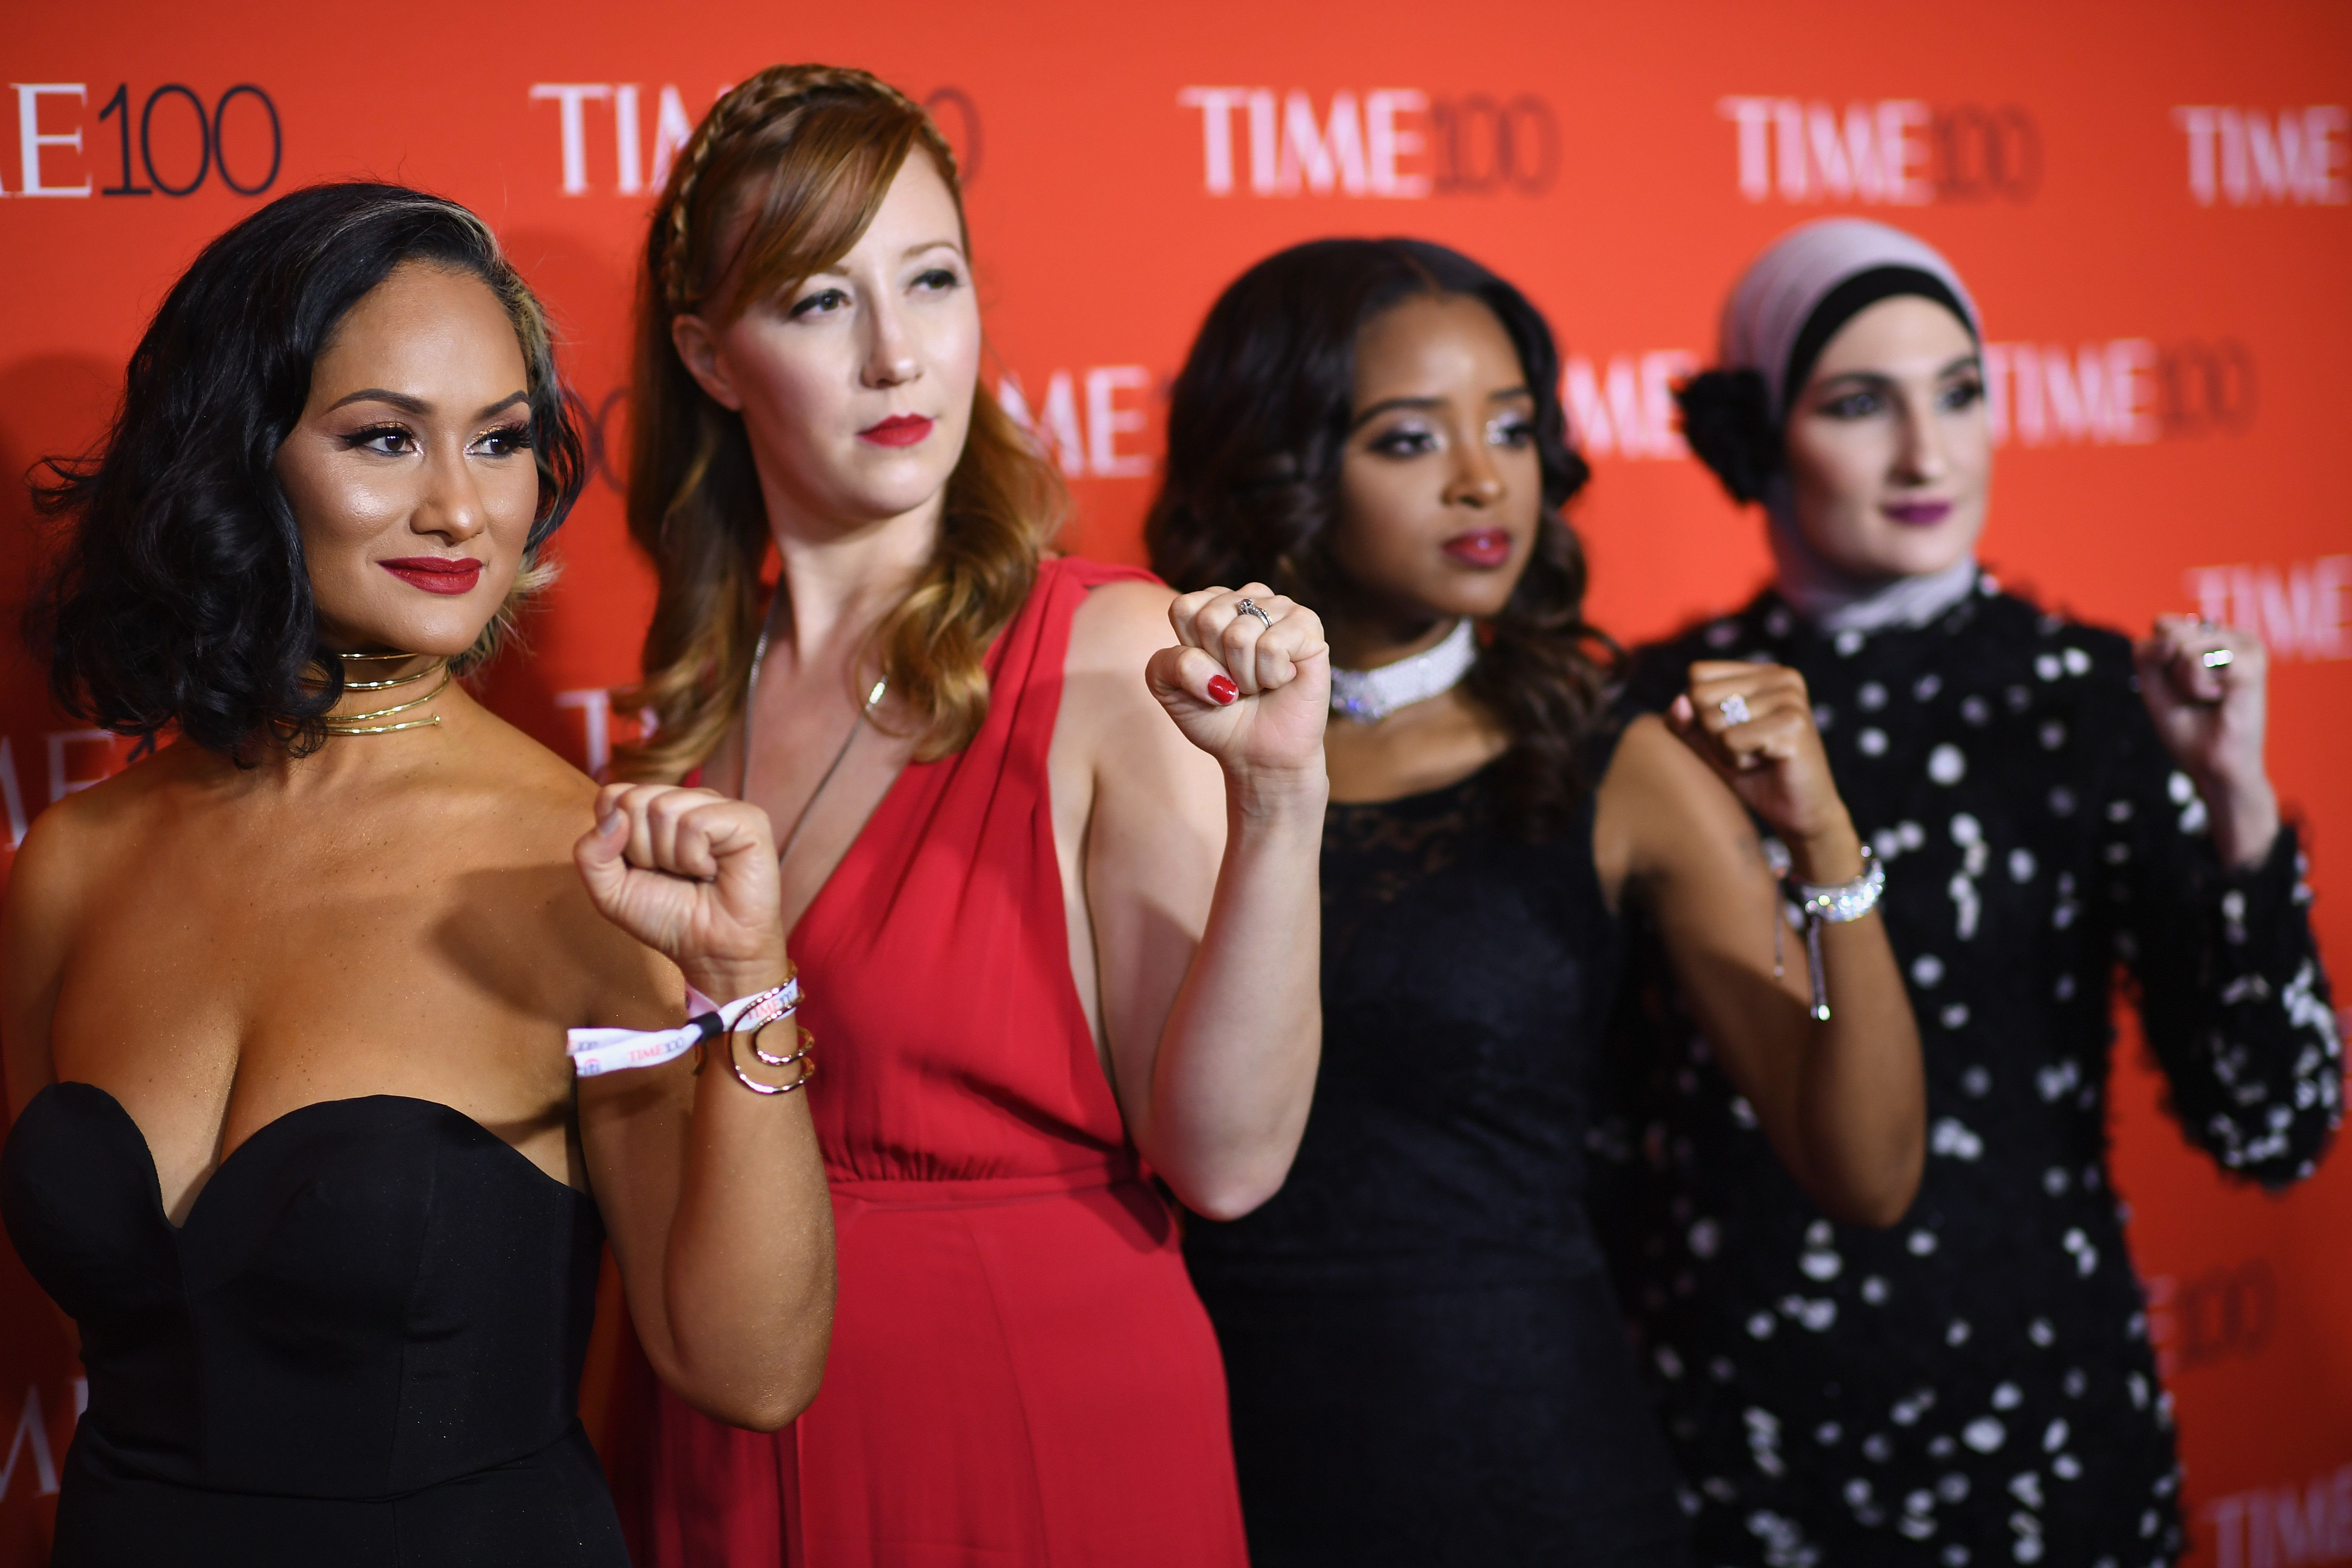 NEW YORK, NY - APRIL 25: (L-R) Women's March National Co-Chairs Carmen Perez, Bob Bland, Tamika D. Mallory, and Linda Sarsour attend the 2017 Time 100 Gala at Jazz at Lincoln Center on April 25, 2017 in New York City.  (Photo by Dimitrios Kambouris/Getty Images for TIME)